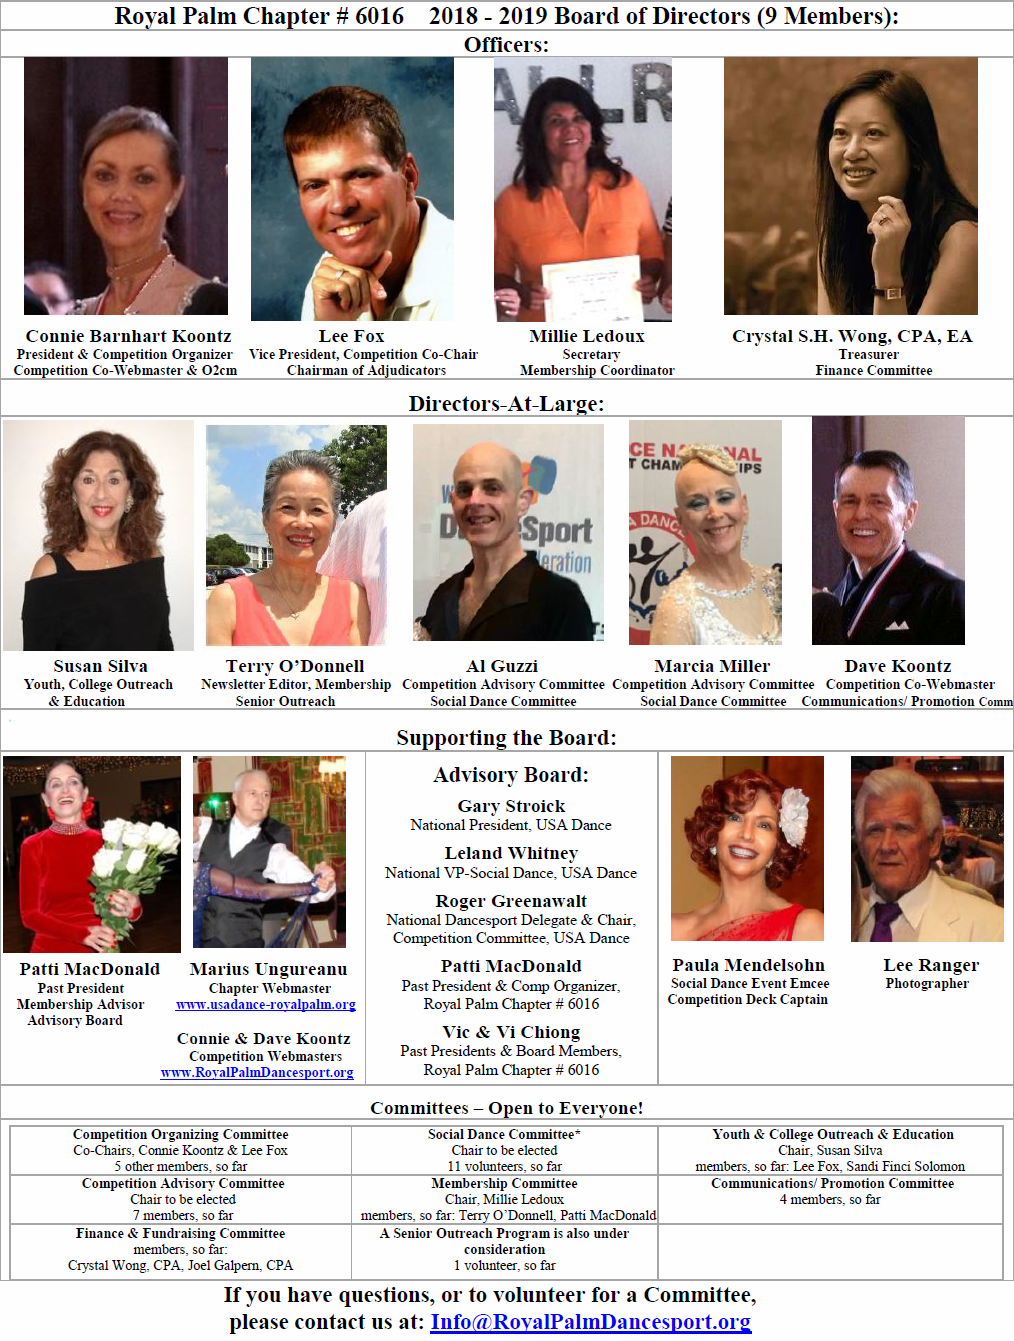 2018-2019 Royal Palm Chapter Board of Directors & Officers